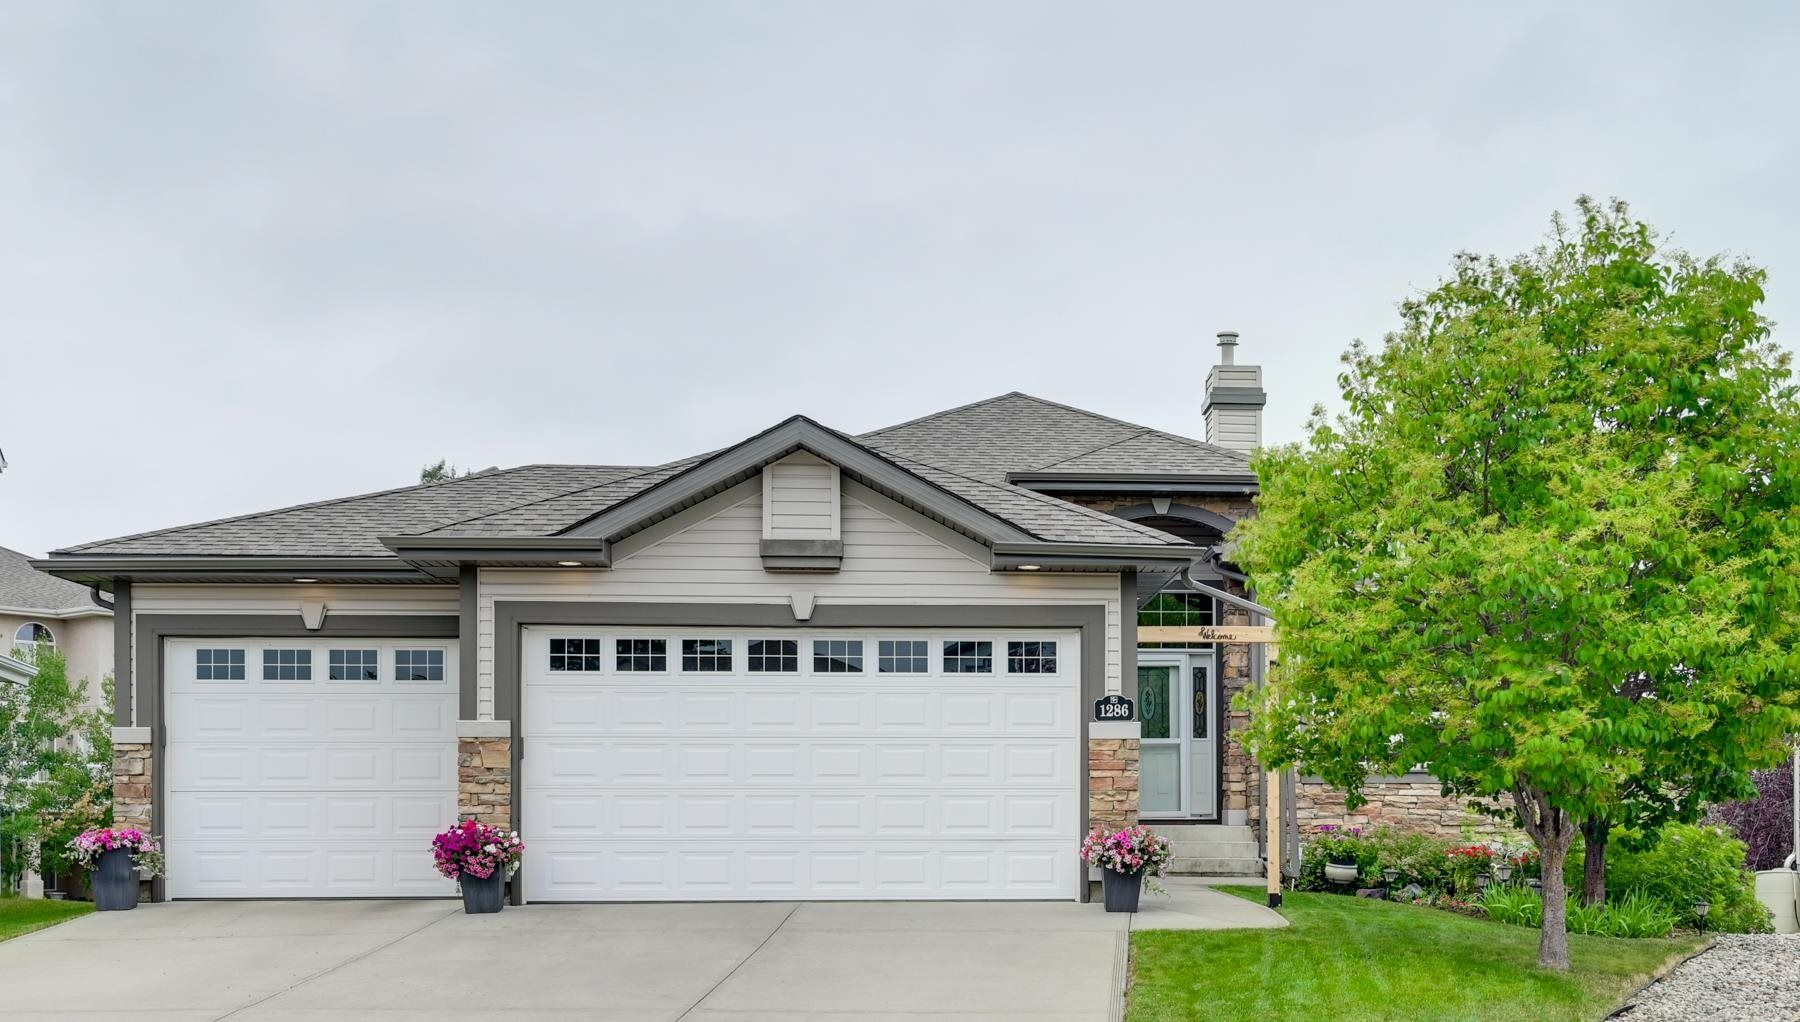 Main Photo: 1286 RUTHERFORD Road in Edmonton: Zone 55 House for sale : MLS®# E4255582